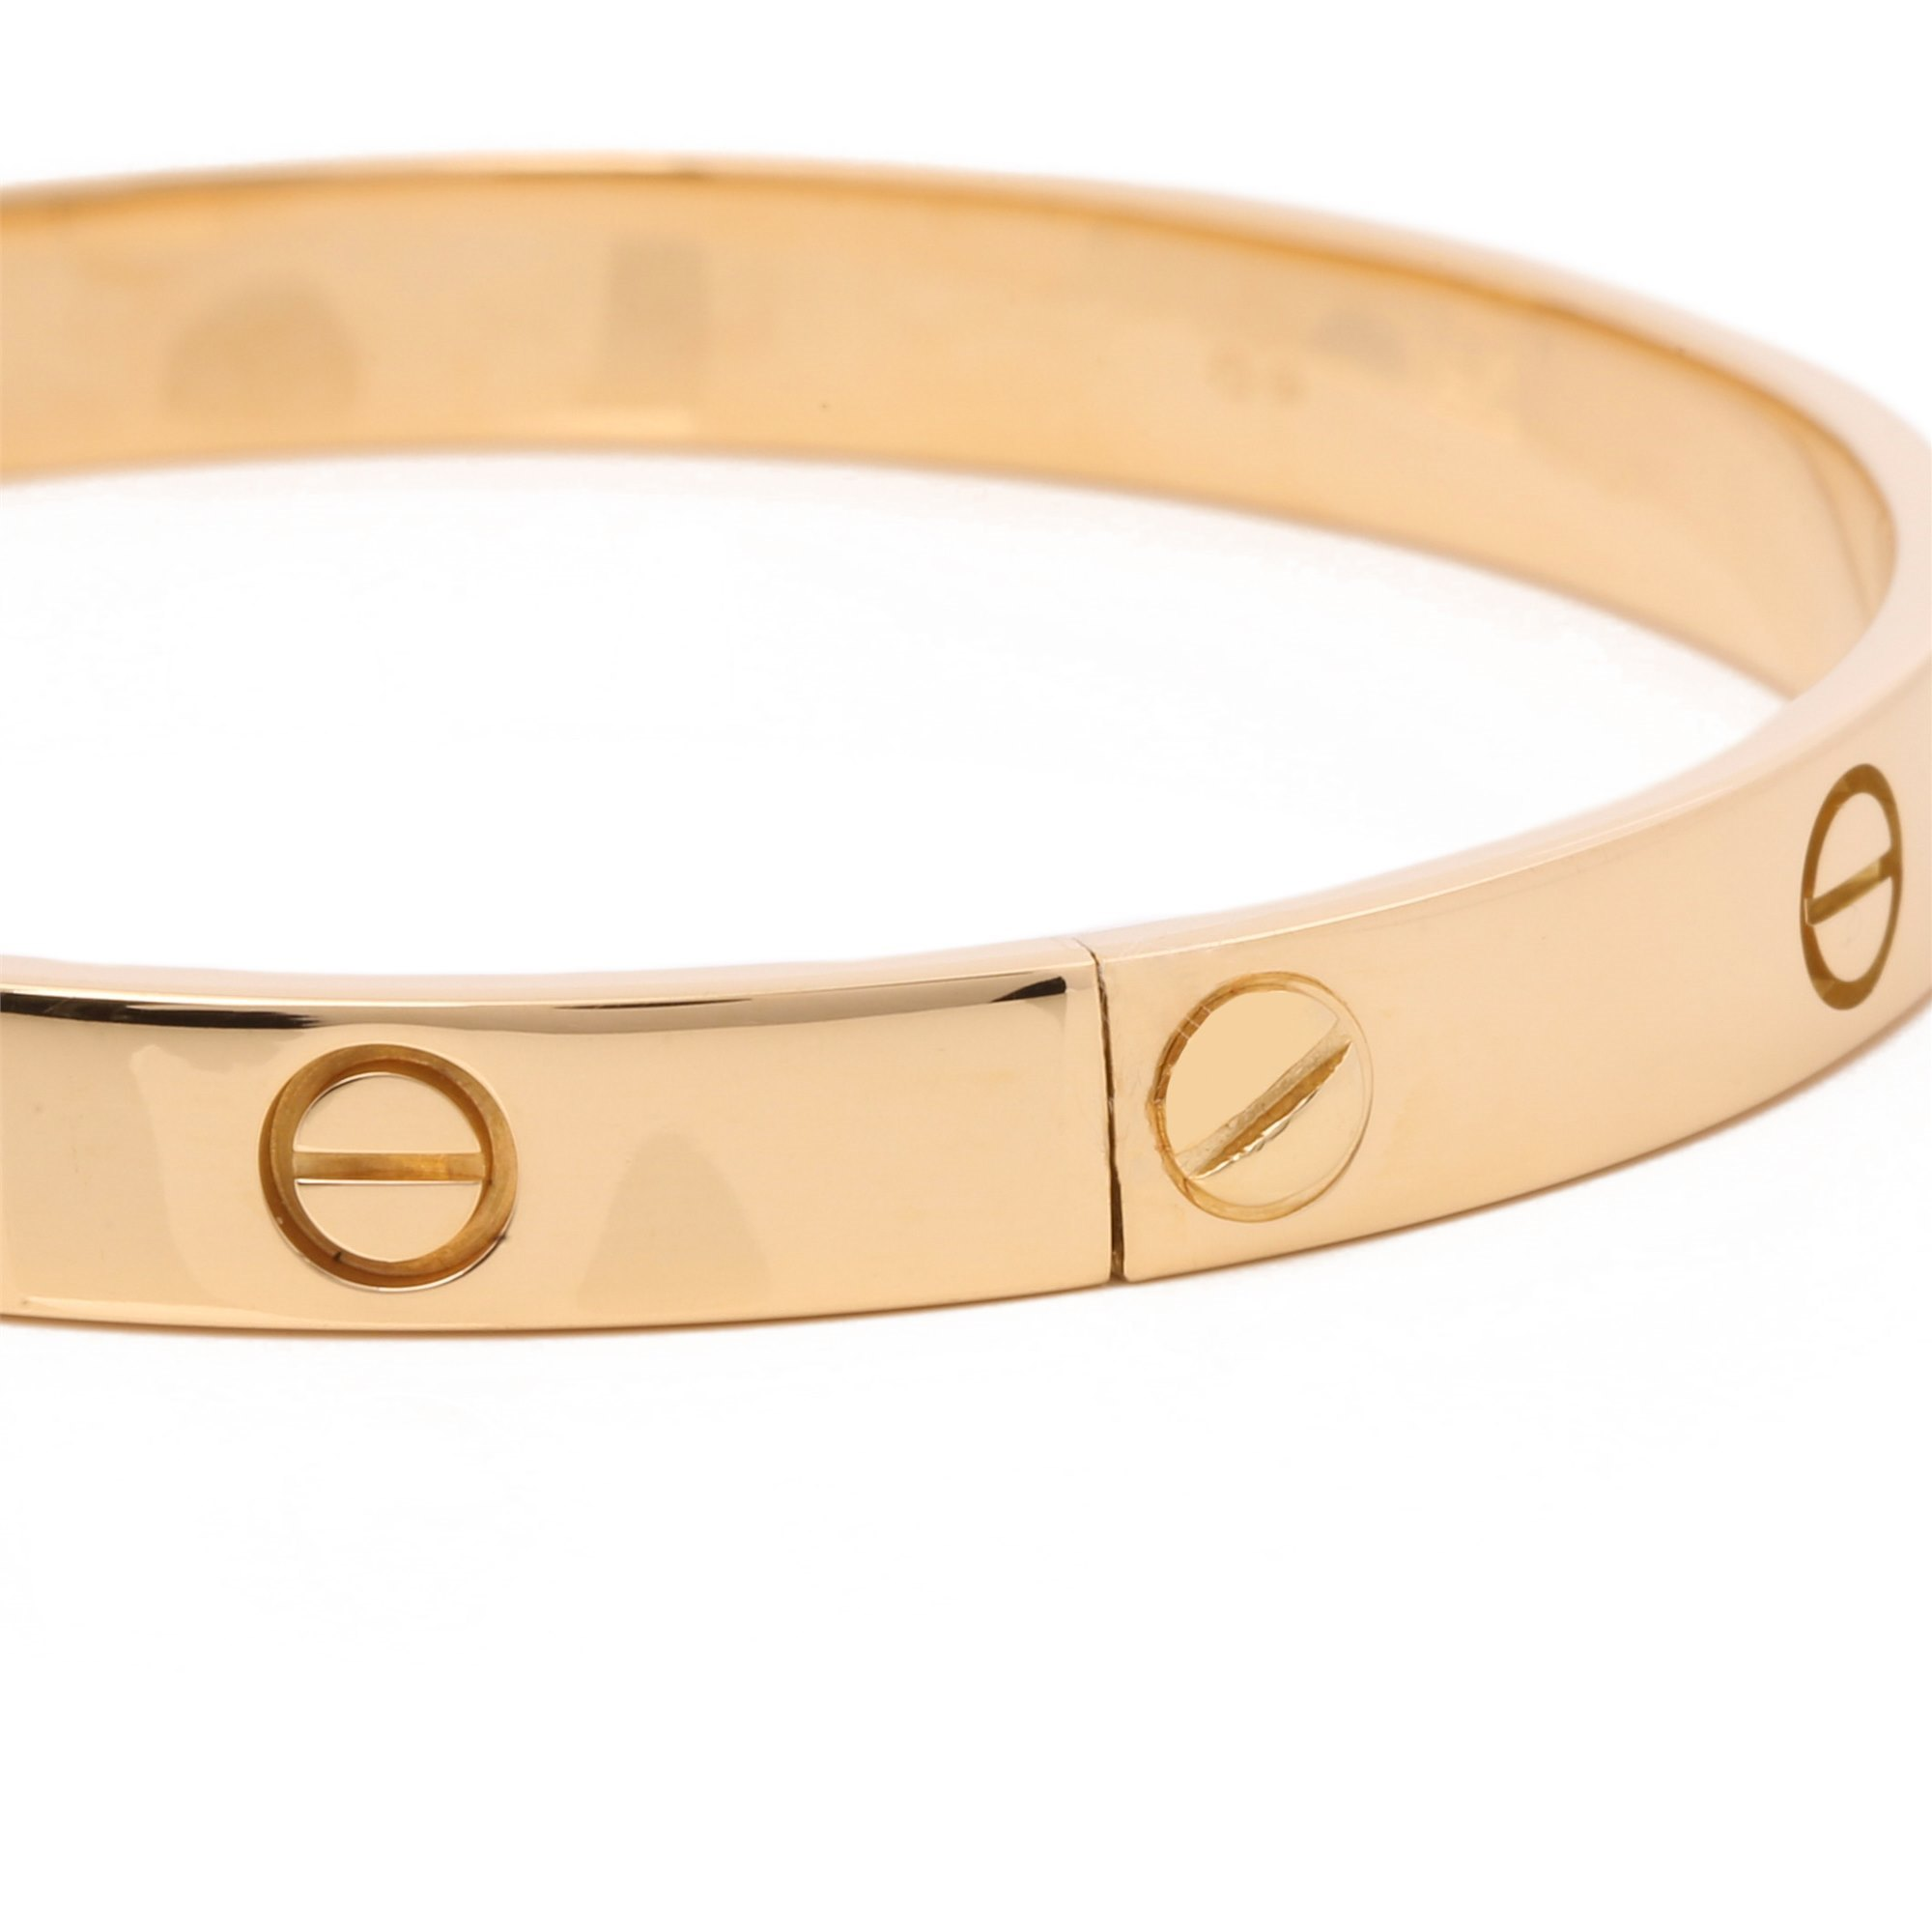 Cartier 18ct Yellow Gold Love Bangle